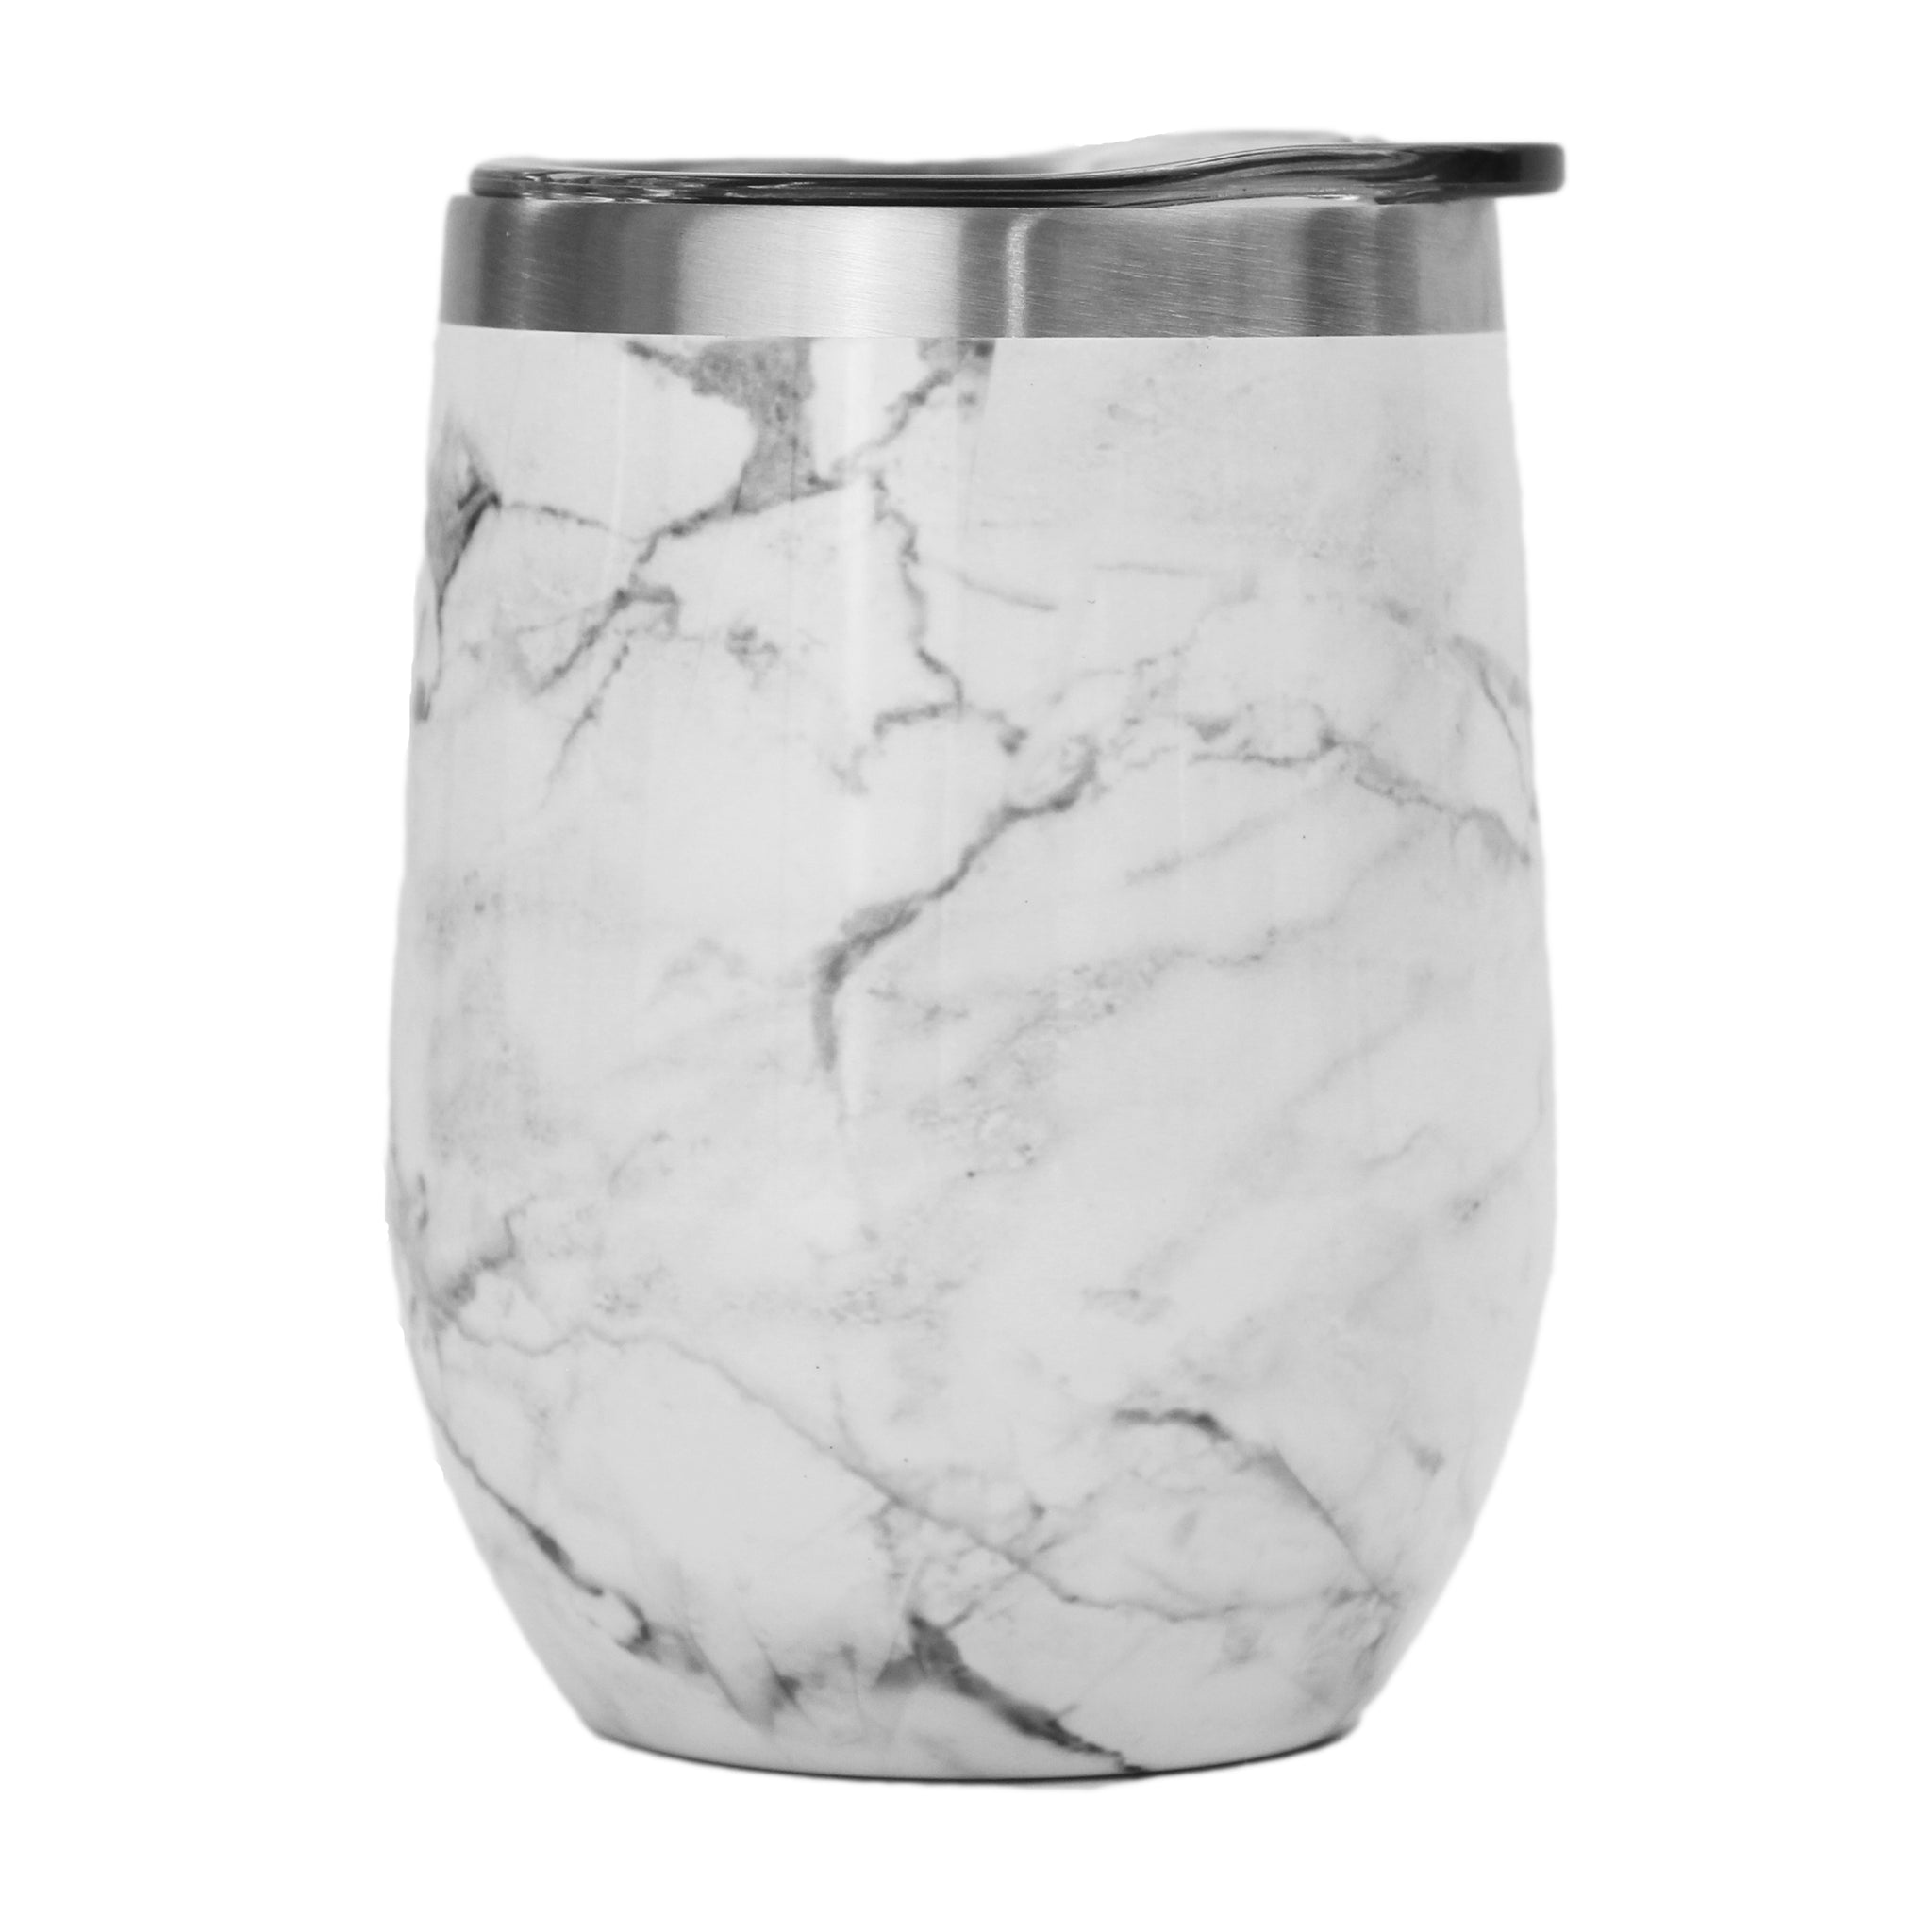 12oz Stemless Wine Tumbler - White Marble